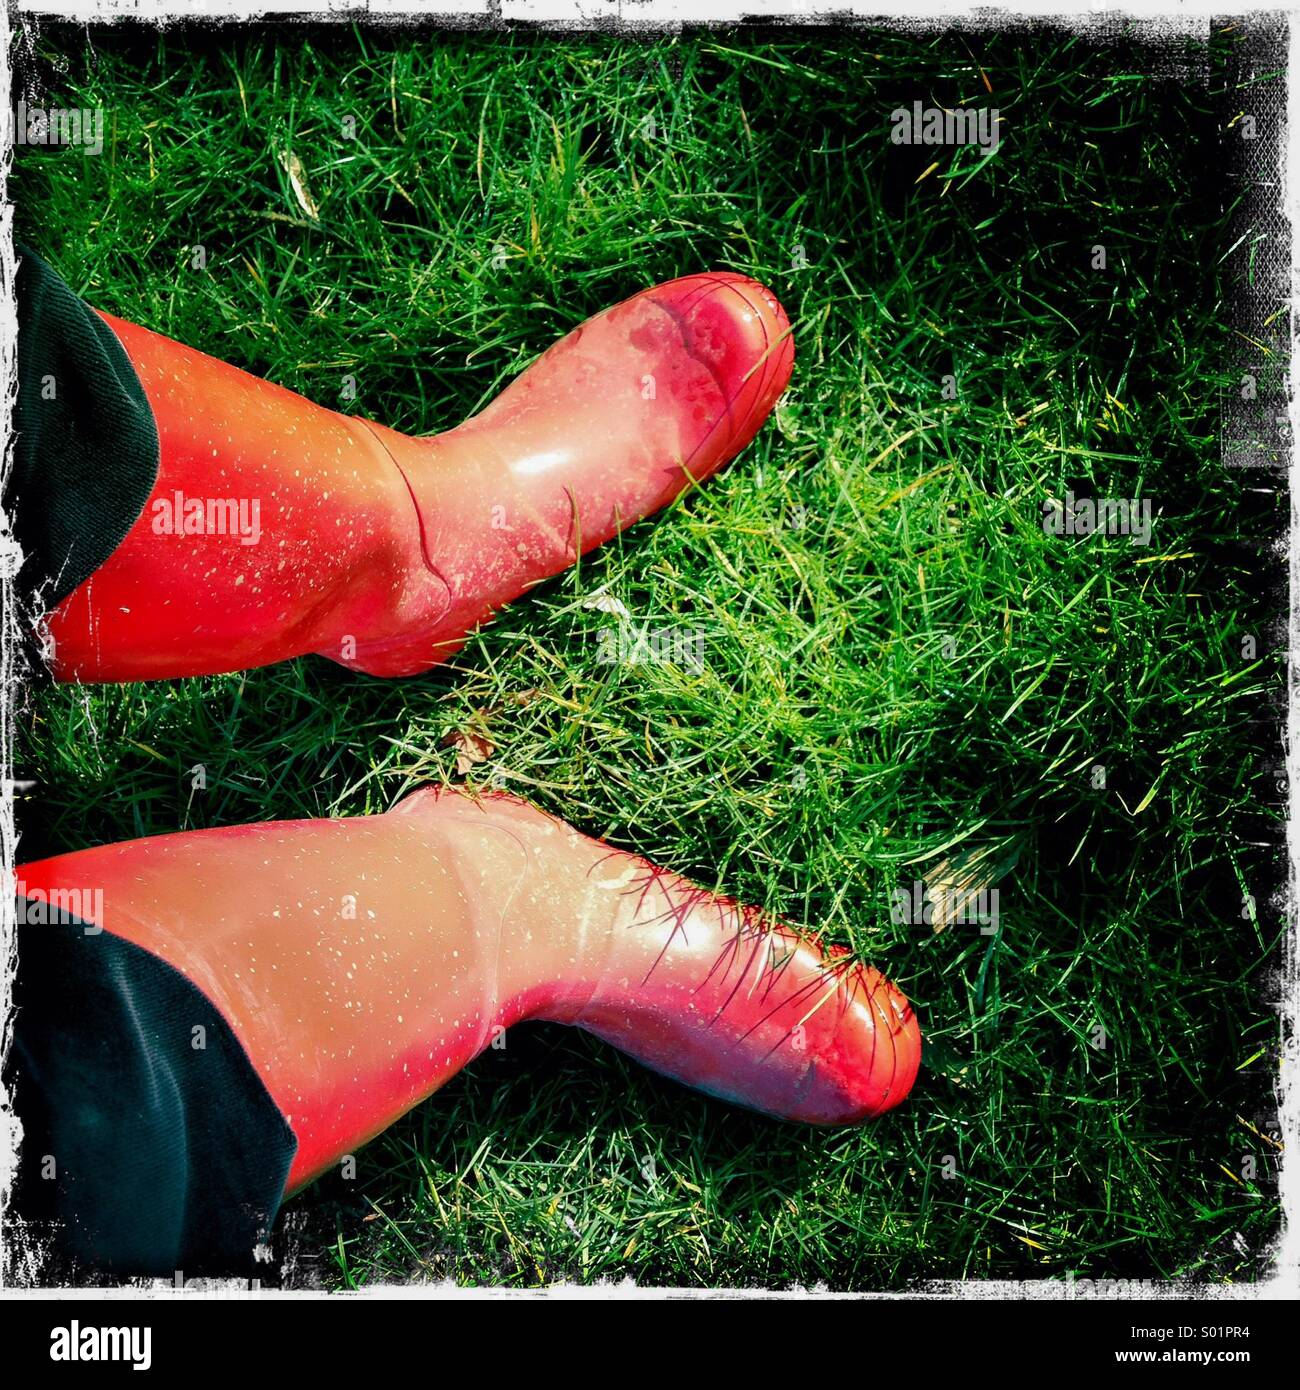 Muddy Red Wellington boots on wet, sodden grass. Hipstamatic  iPhone. - Stock Image